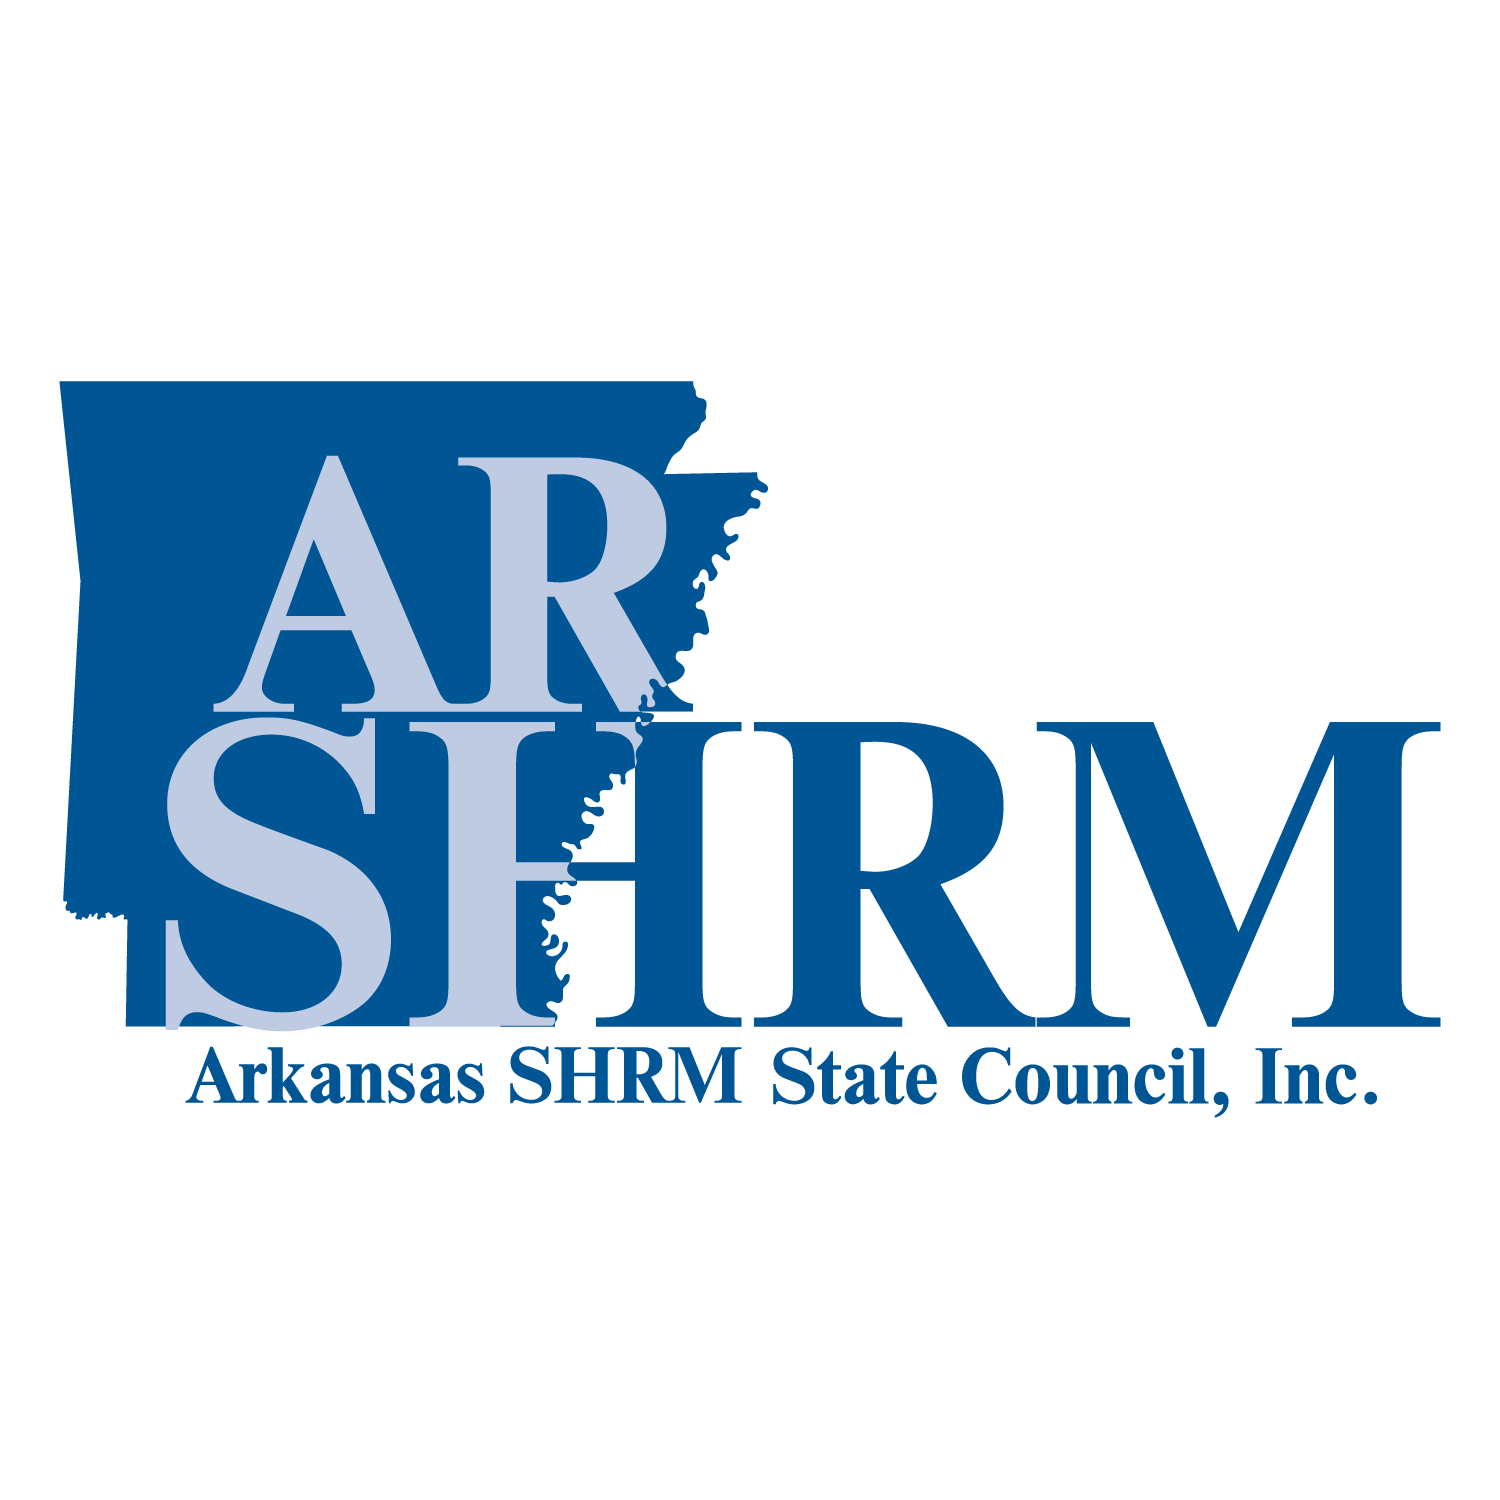 Certification arkansas shrm state council inc arkansas shrm certification arkansas shrm state council inc arkansas shrm state council inc xflitez Gallery